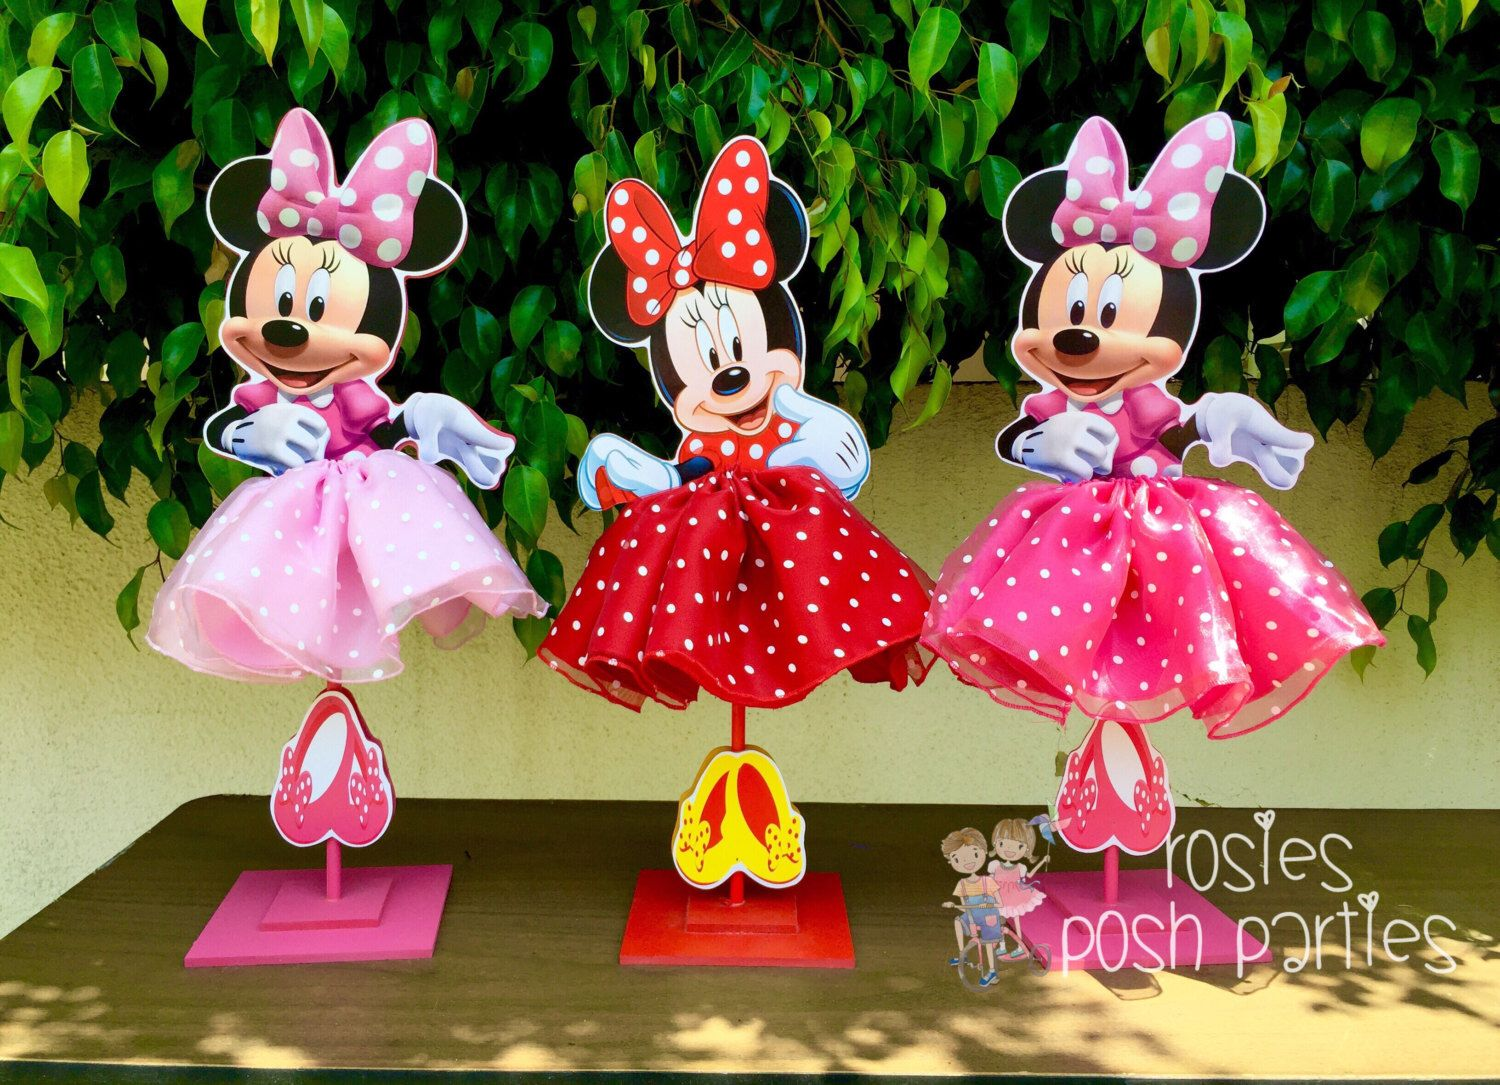 Pin by Michele McMullen on Minnie Party Pinterest Minnie mouse